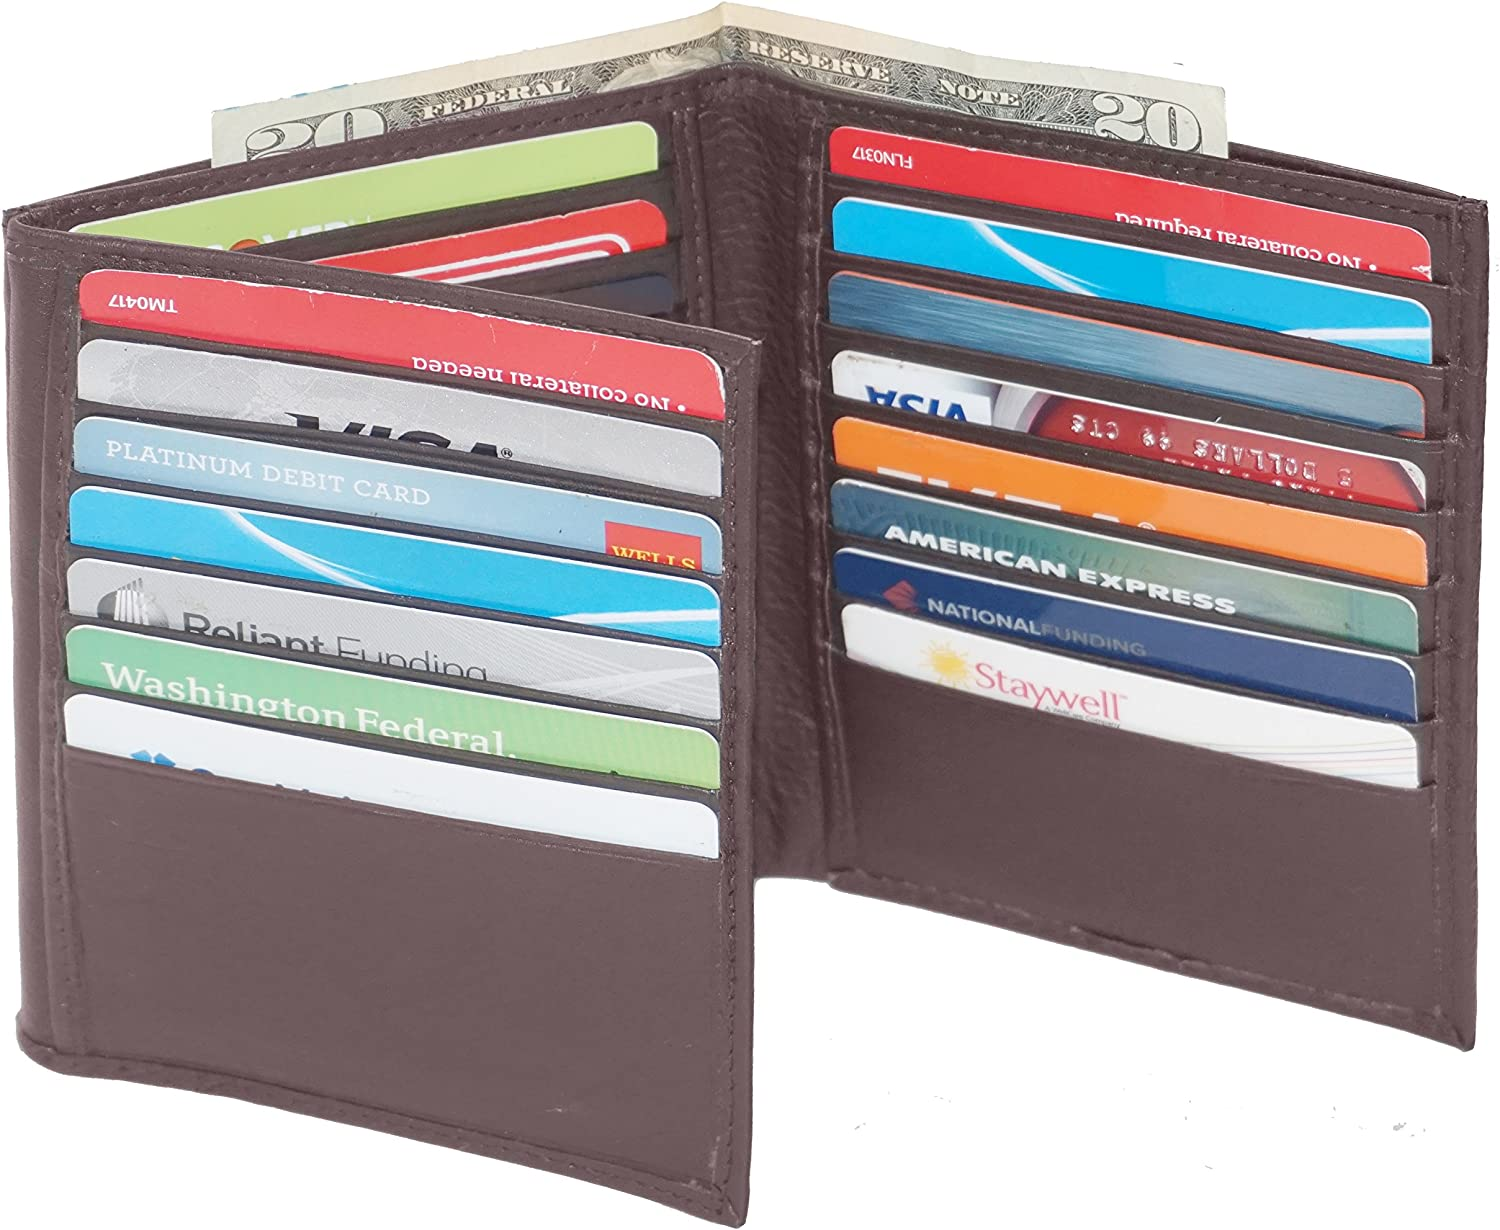 Hipster Wallet for Men | Genuine Leather Trifold Mens Wallet Credit Card Holder Brown By Bullz